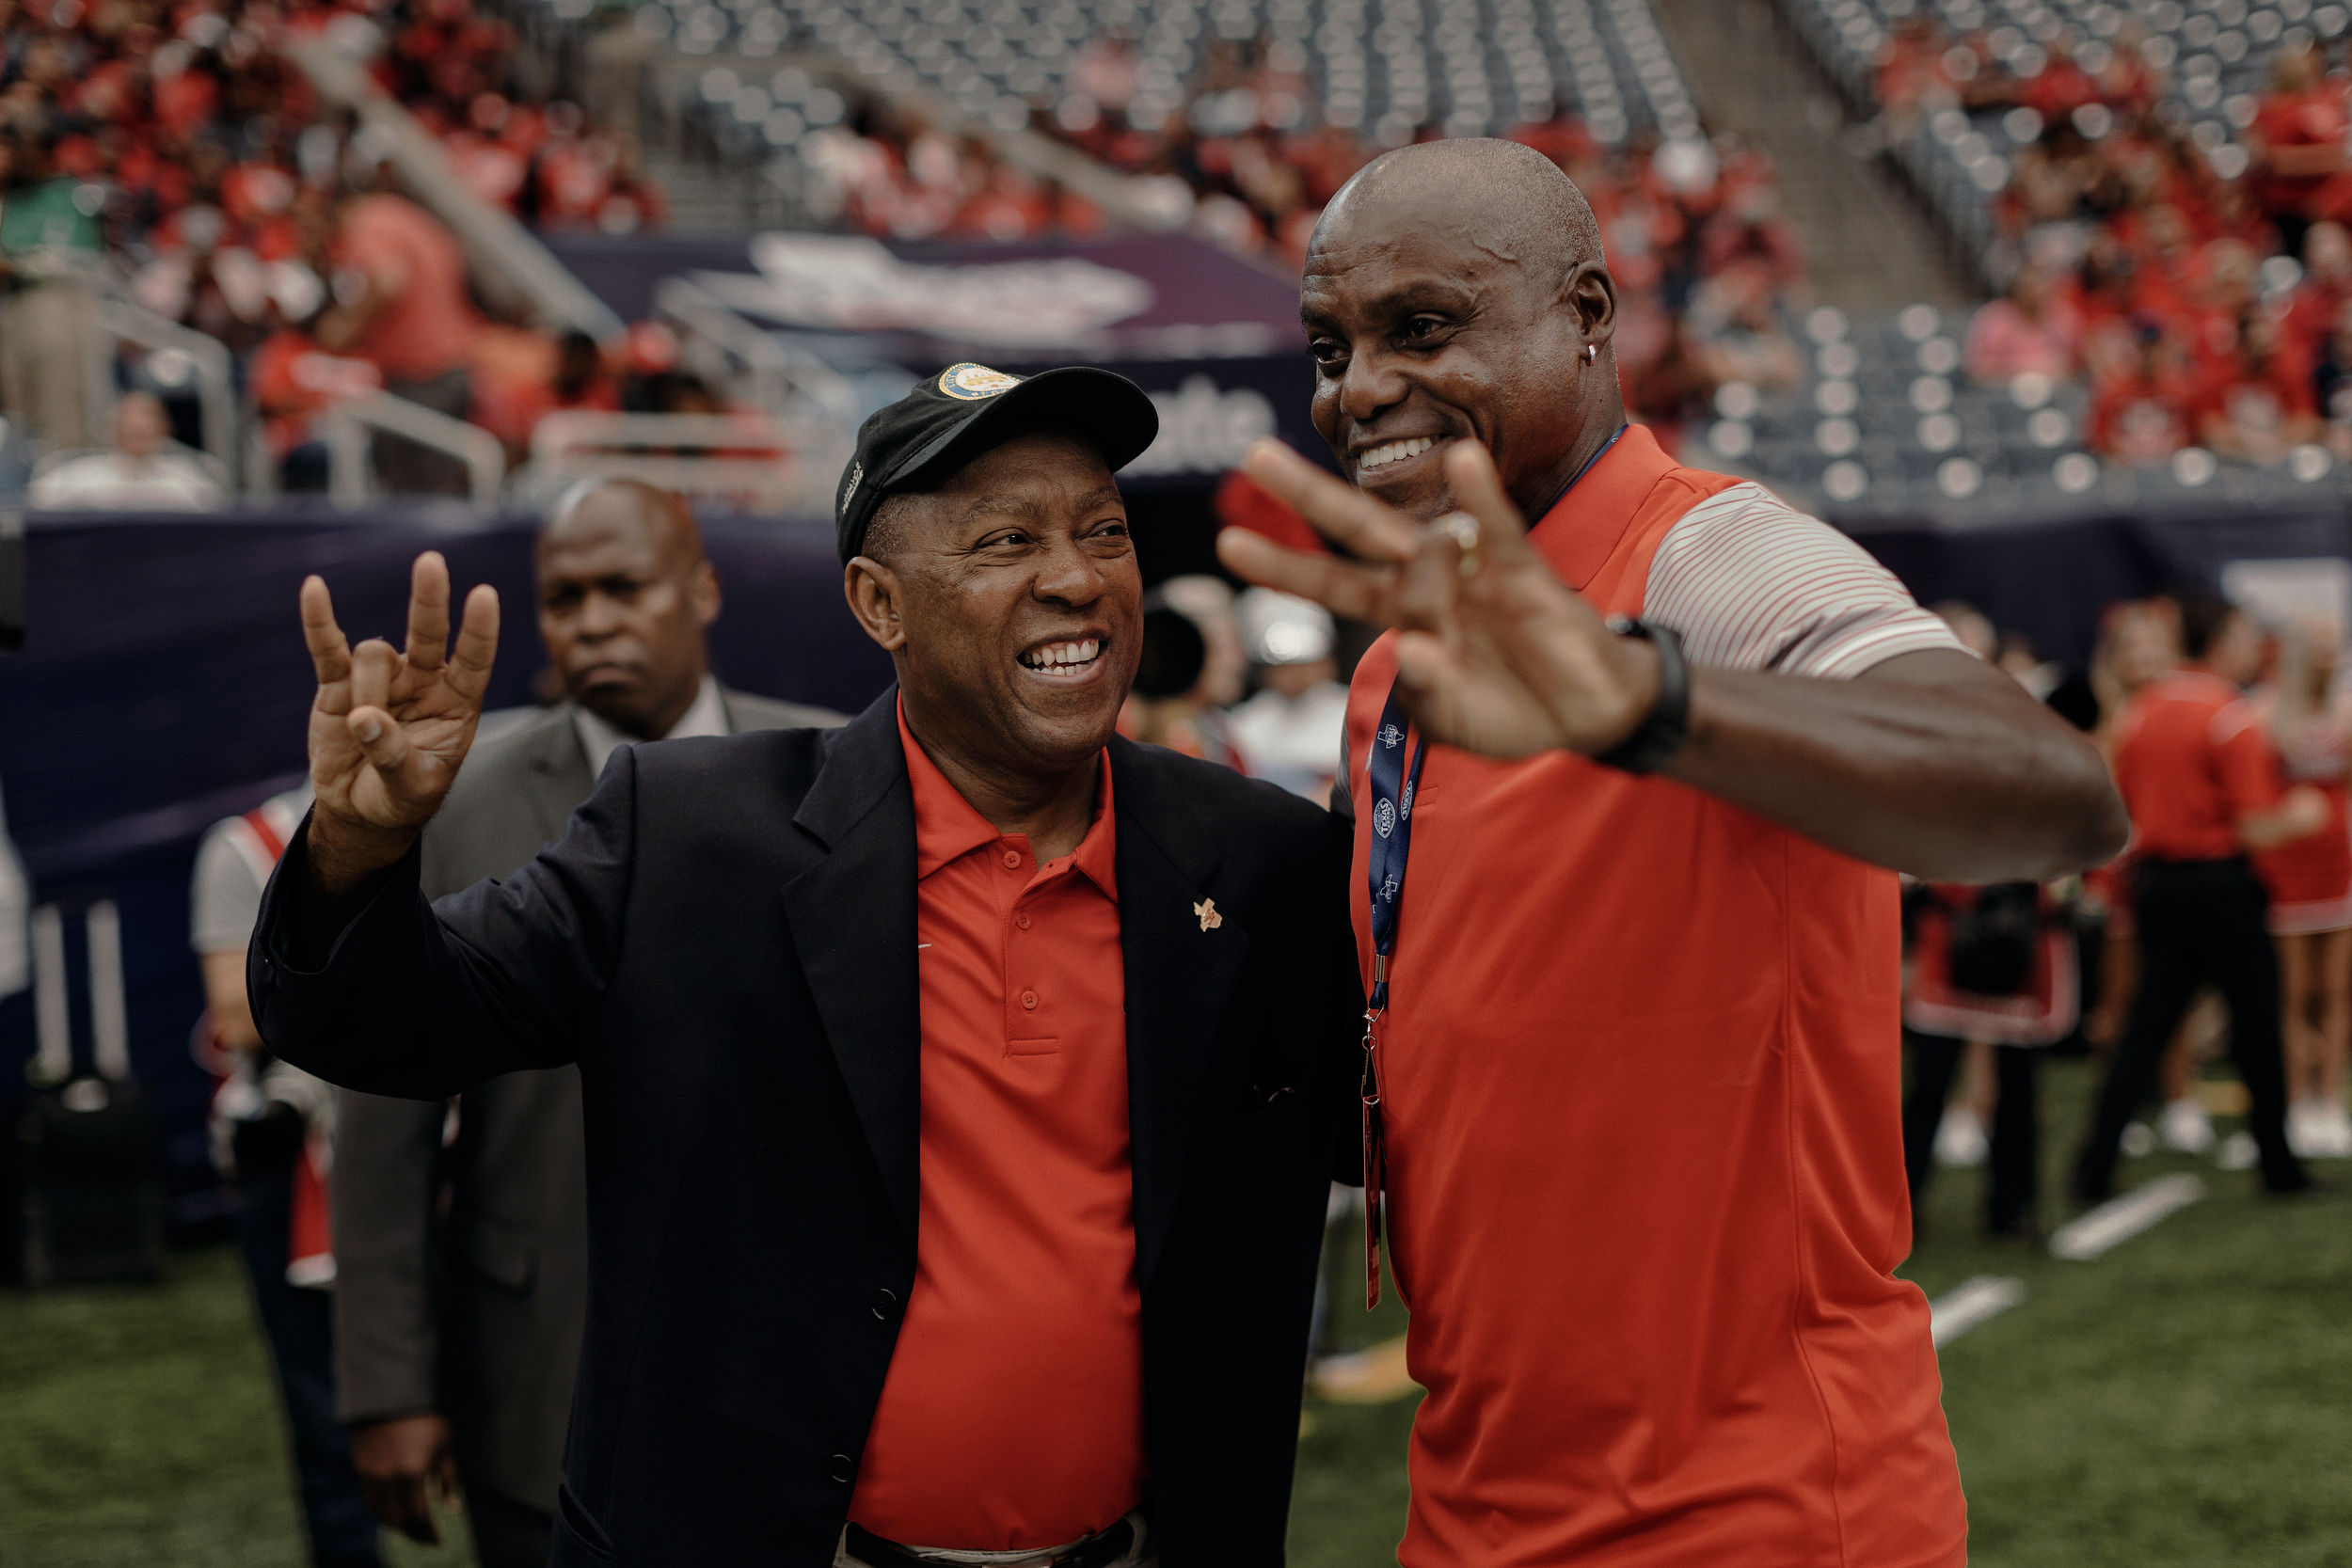 Houston mayor, Sylvester Turner smiles at former US olympian and University of Houston graduate, Carl Lewis, while both pose for a photo prior to the game. Todd Spoth for The New York Times.